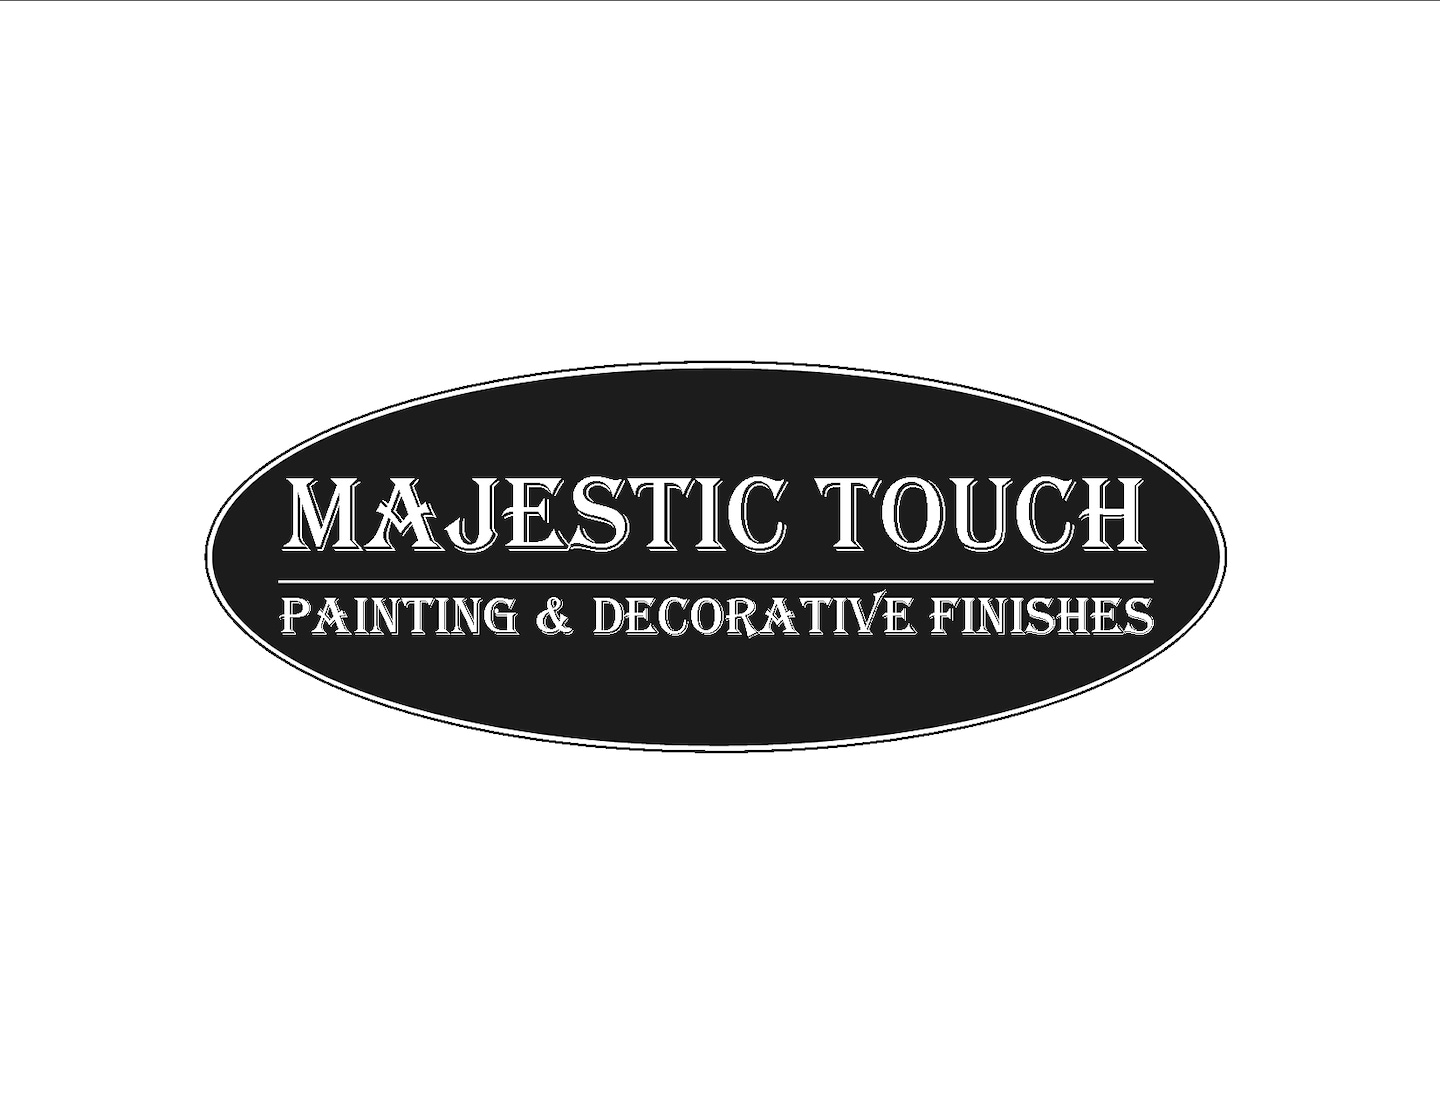 Majestic Touch Painting & Decorative Finishes